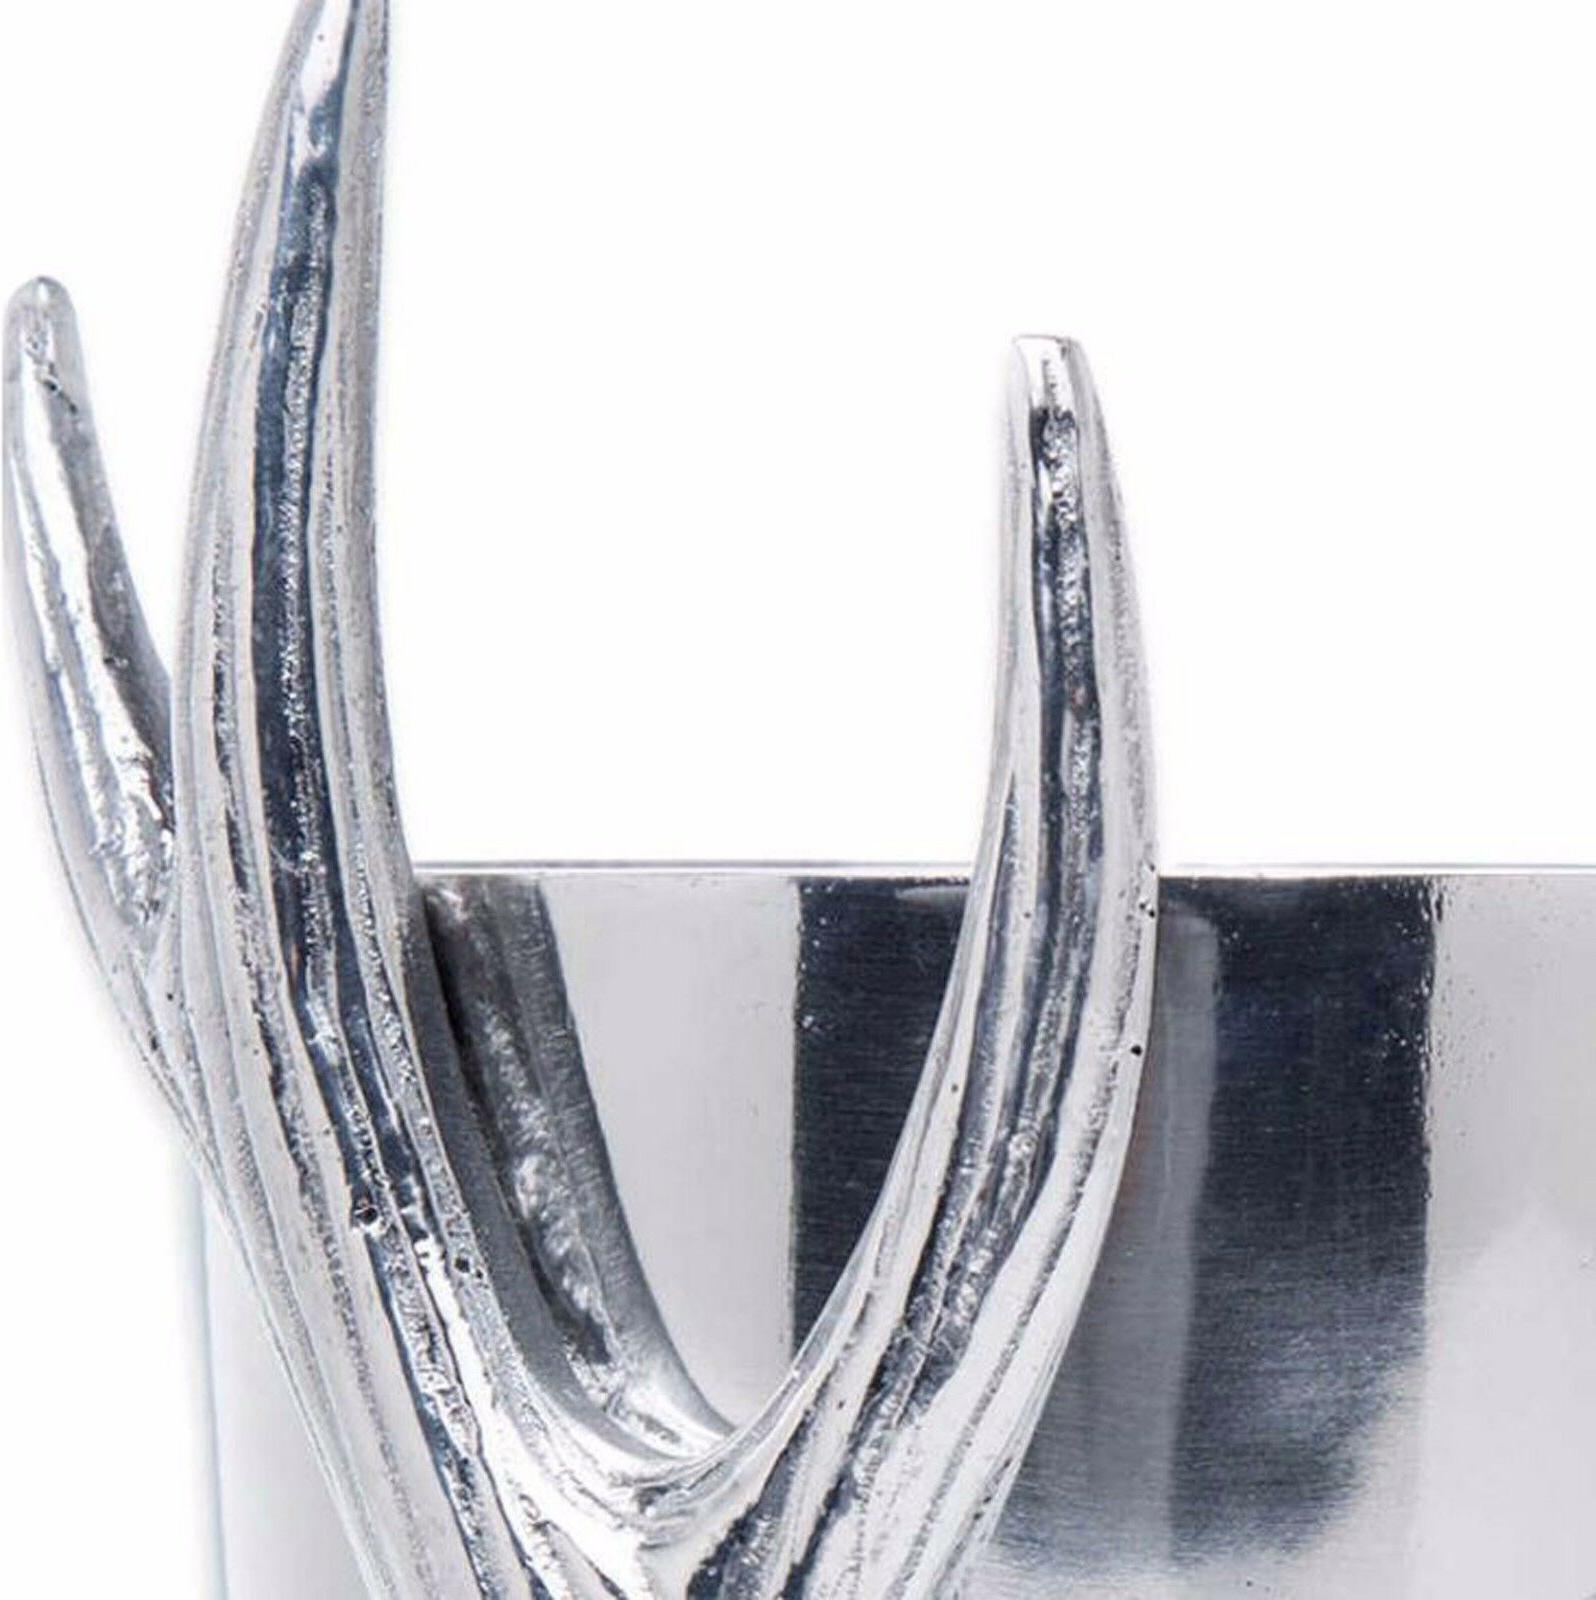 8-Inch Aluminum Antler Design Top Bottle/Utensil Holder